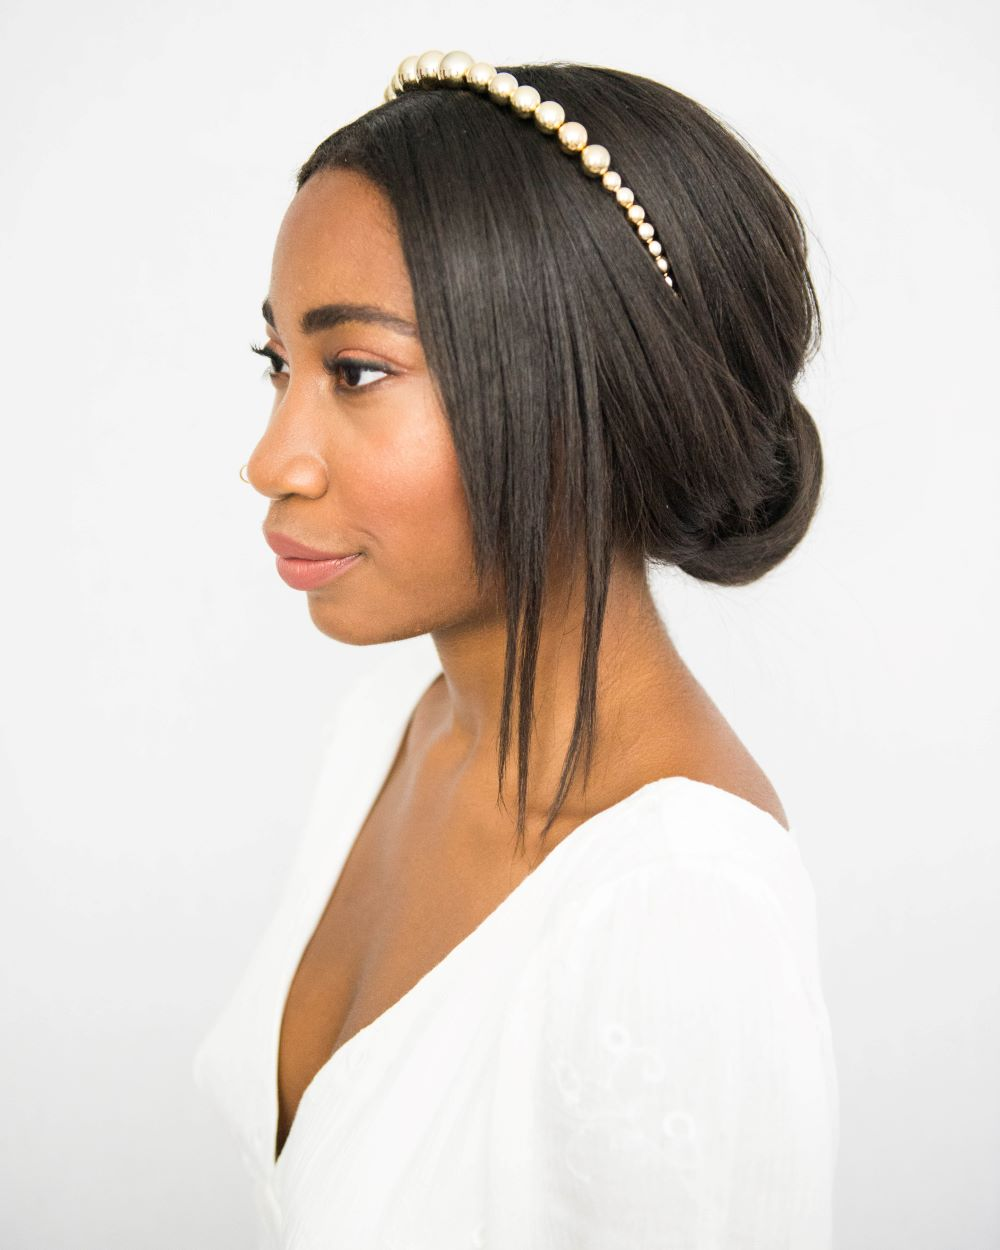 Wedding Hairstyles Headband: Headband Hairstyles For Brides: An Easy Low Updo Perfect